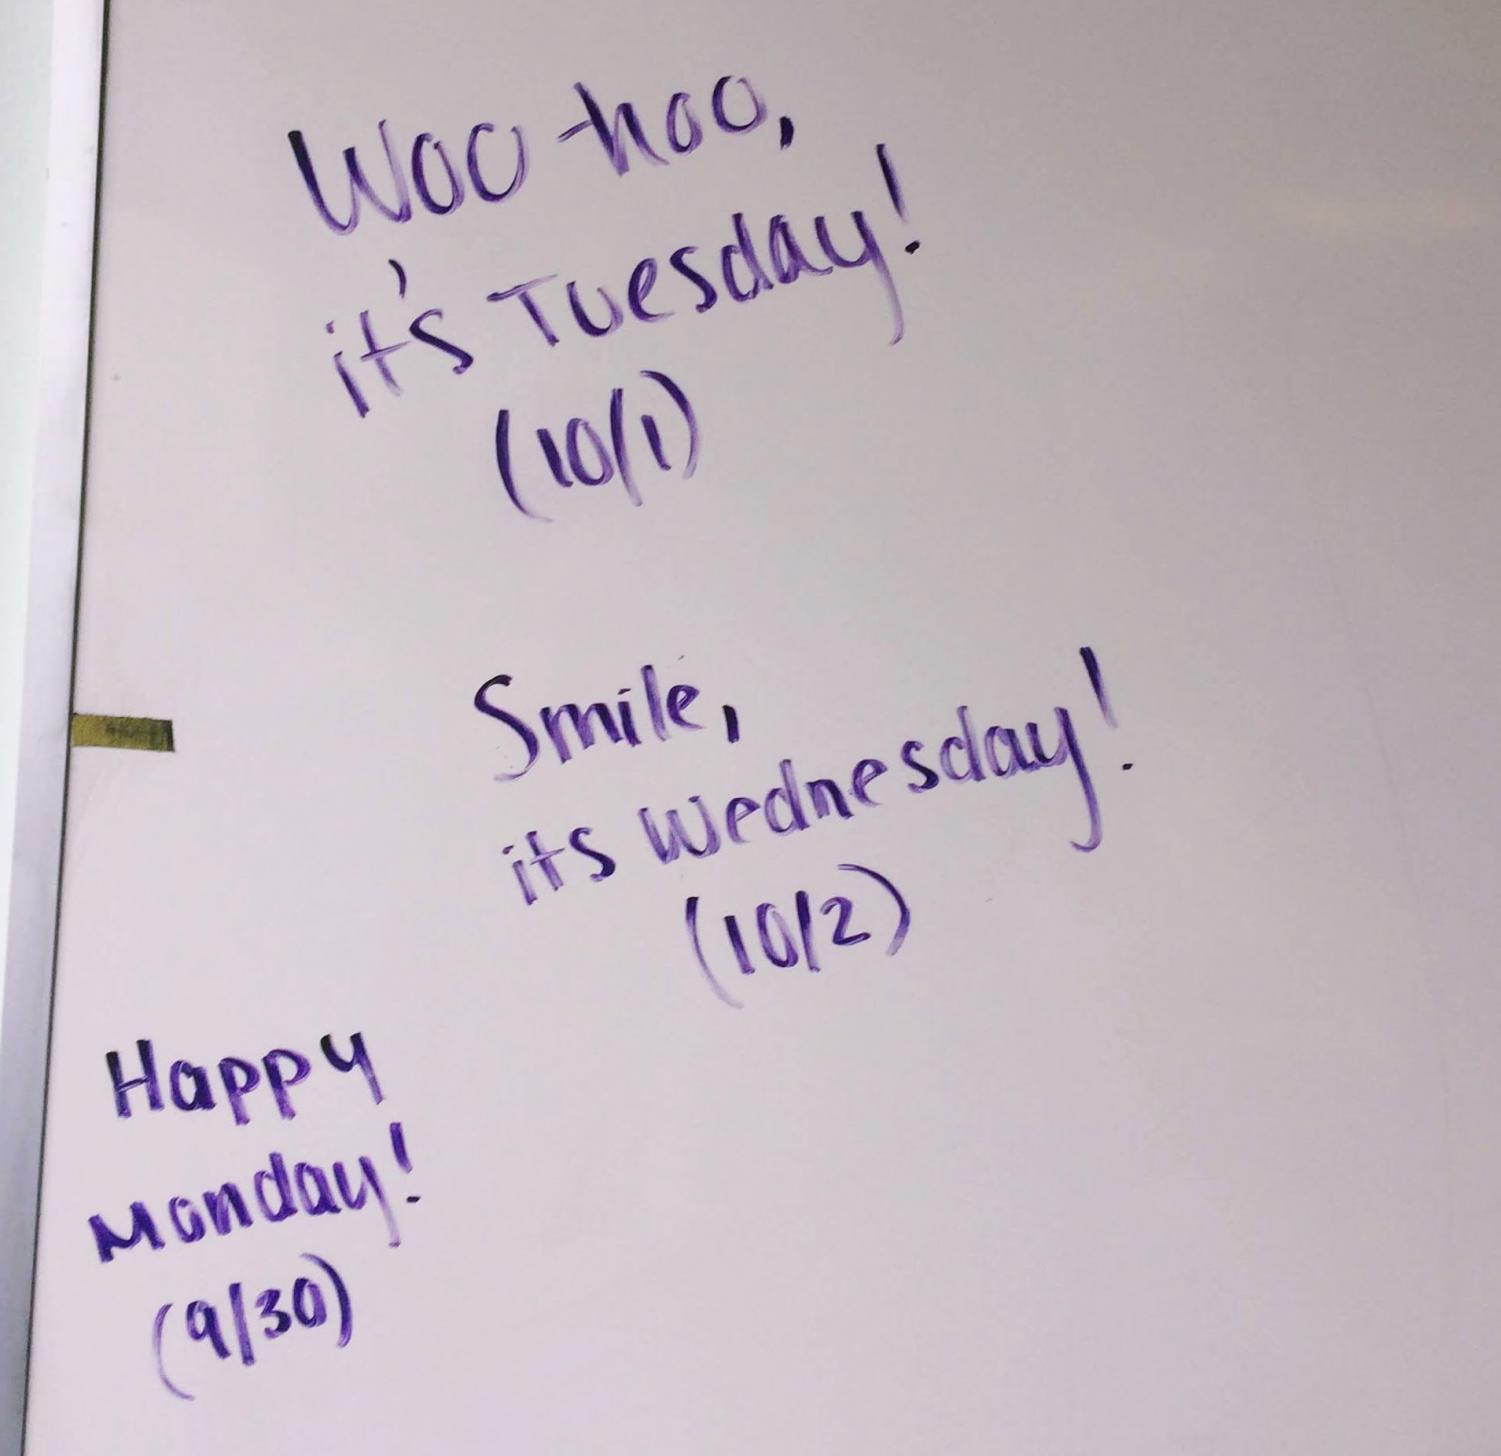 Positive messages left by the mystery writer on the white board in the computer lab.